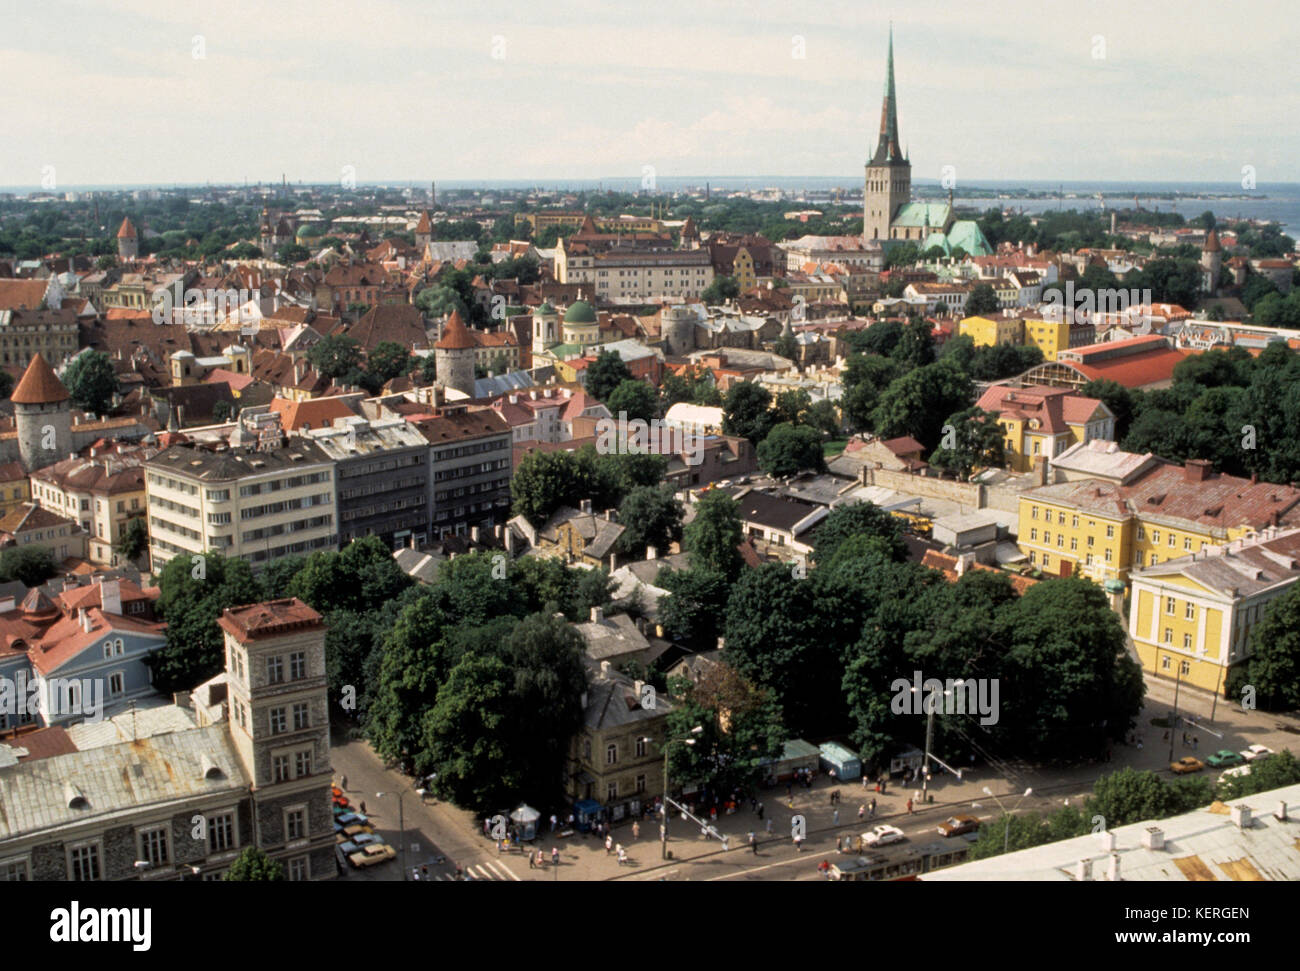 ESTONIA TALLINN view over town 2003 - Stock Image